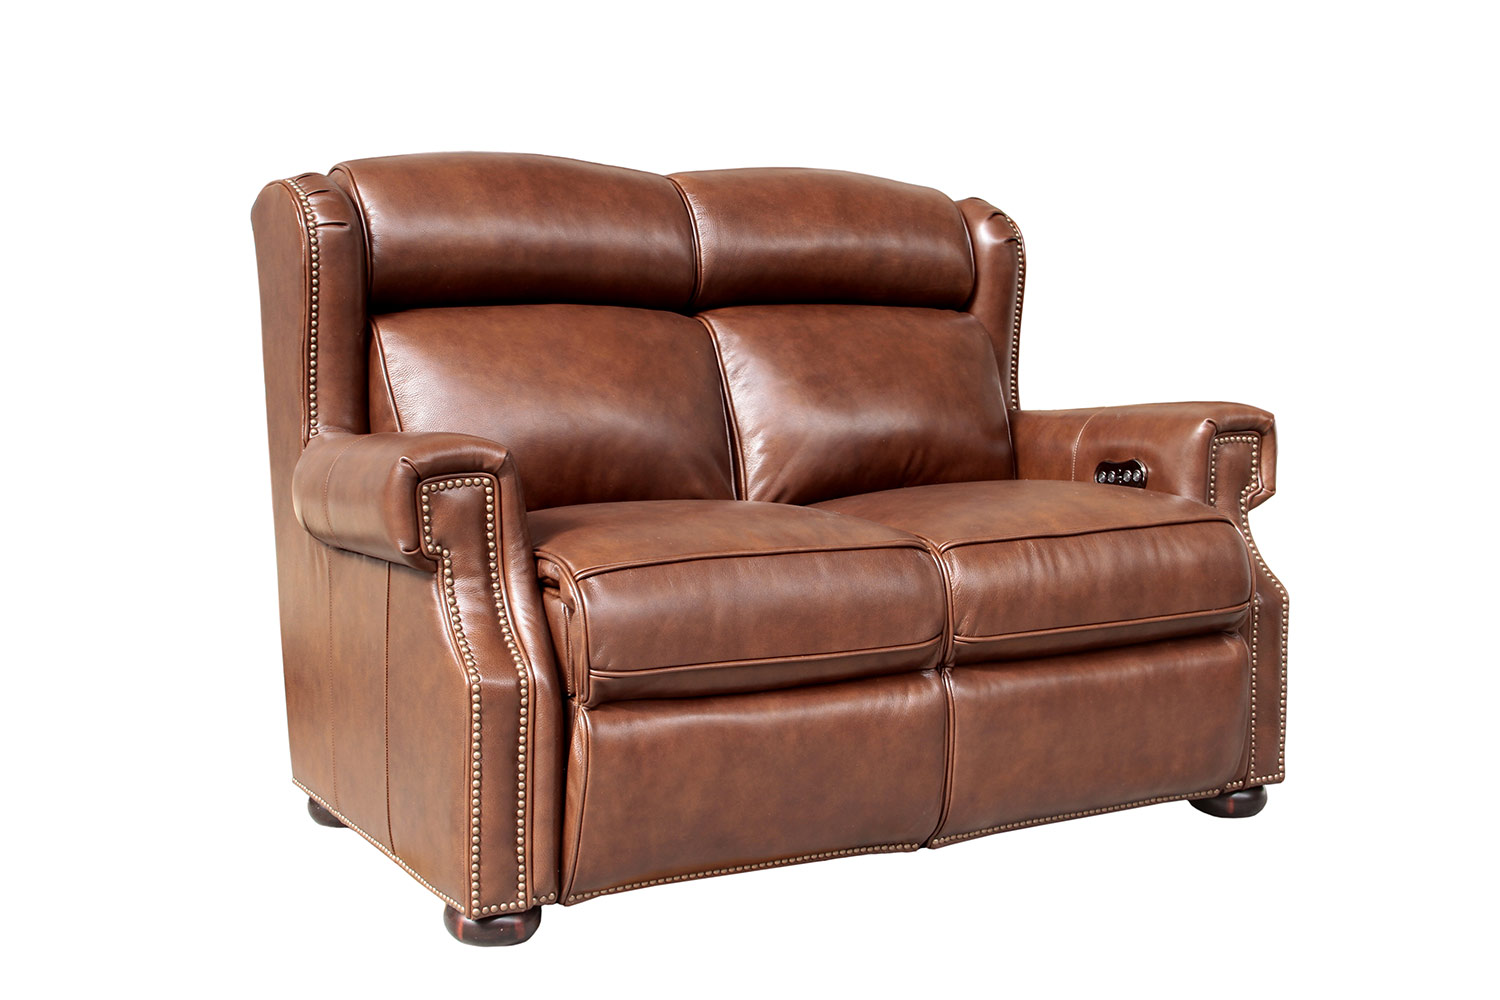 Barcalounger Benwick Power Reclining Loveseat with Power Head Rests - Shoreham Chocolate/All Leather